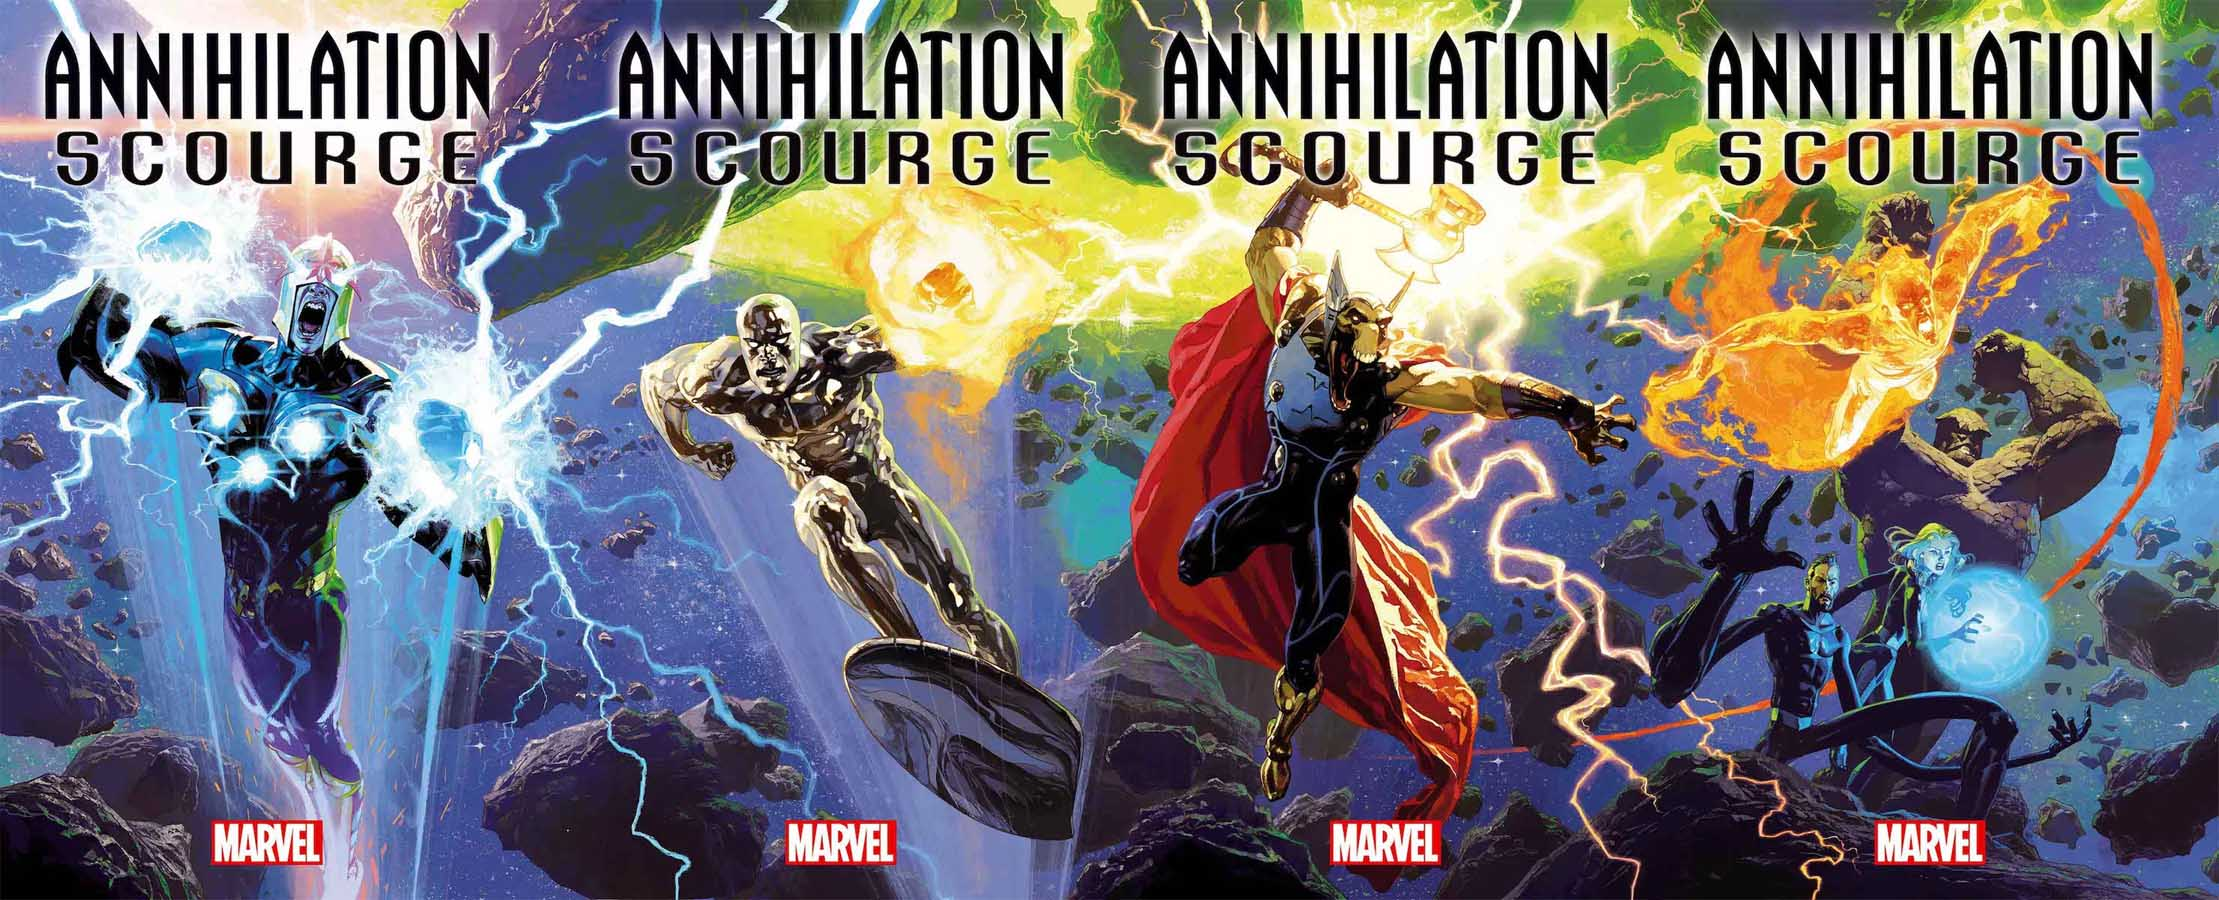 'Annihilation: Scourge' One-Shots Revealed for December